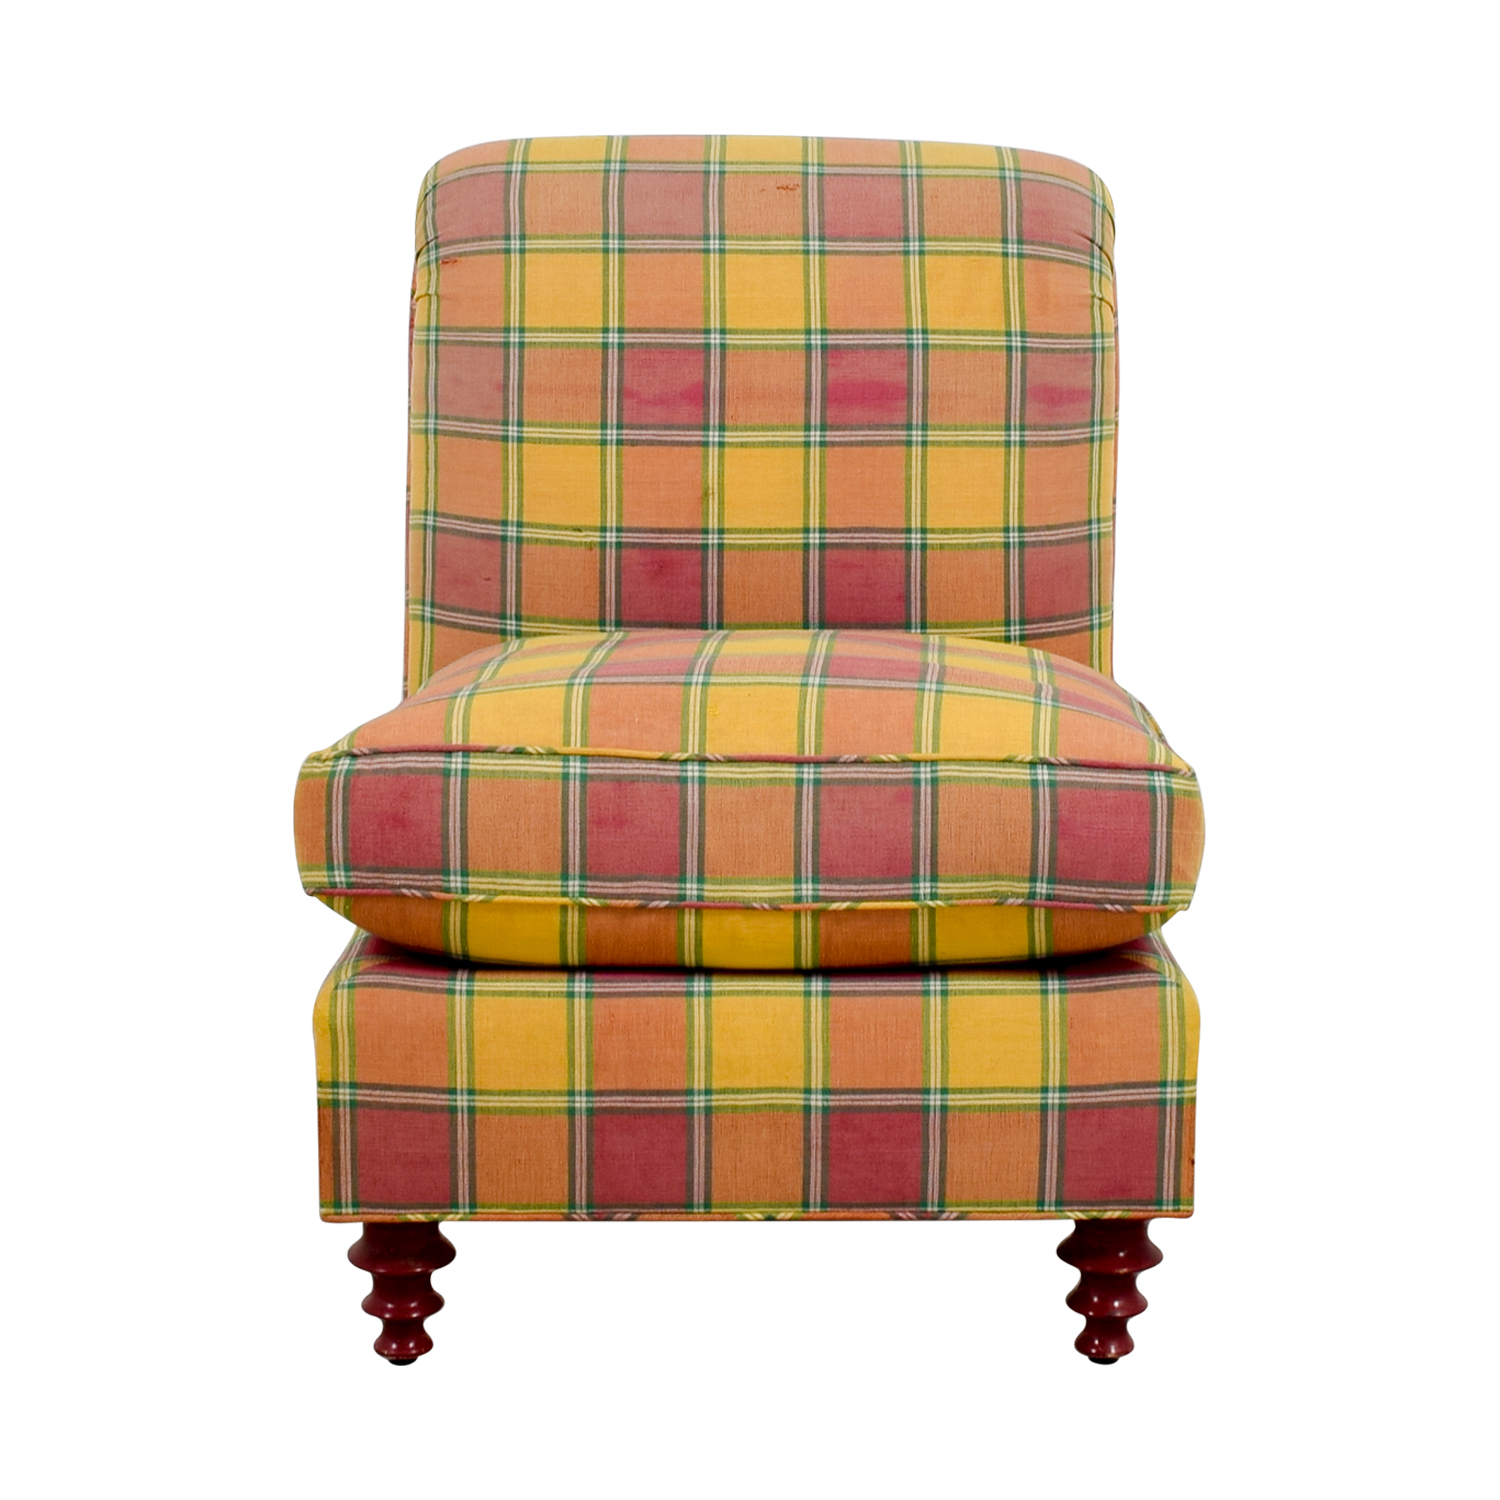 Furniture Masters Furniture Masters Red and Yellow Plaid Accent Chair